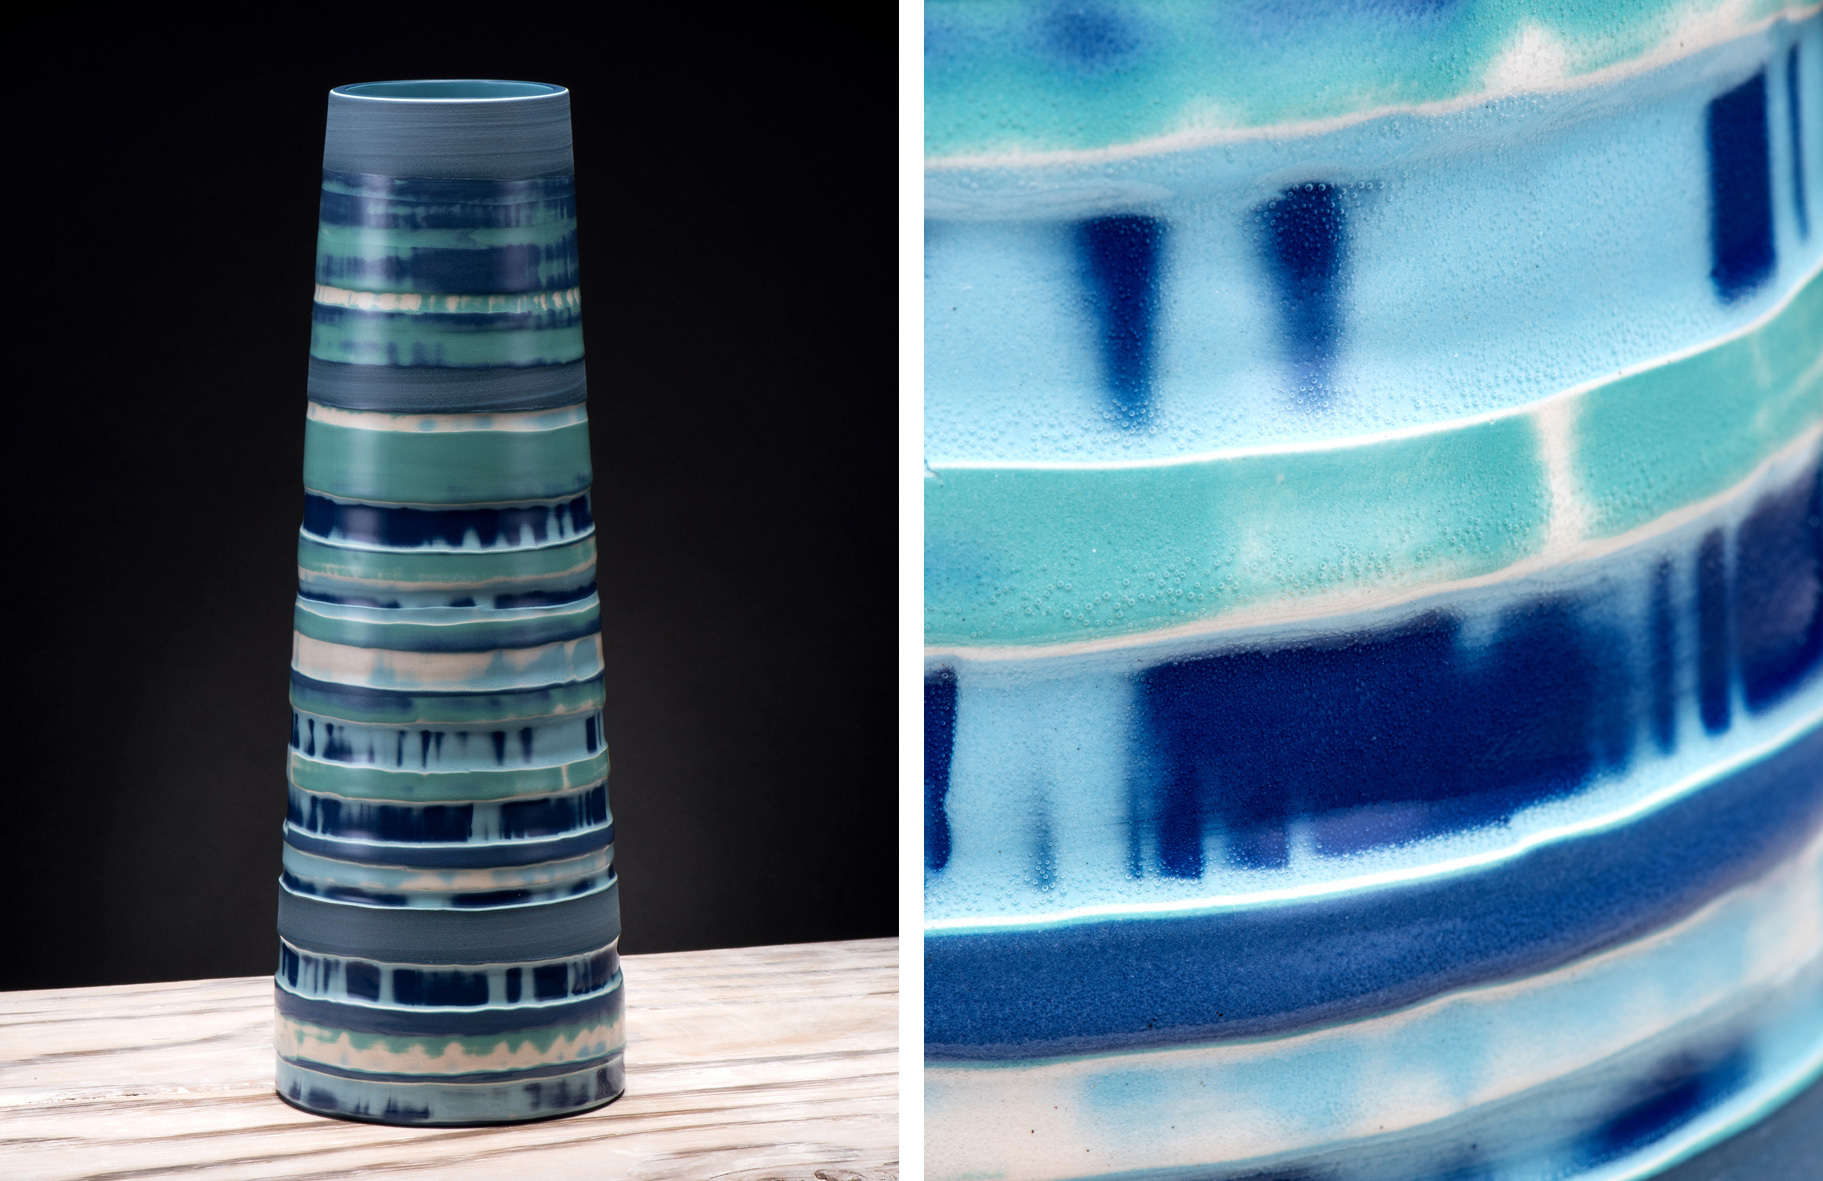 """This Aquamarine, Turquoise Blue Coast Series #2 Large Ceramic Stem Vase together with a further selection of Coast Series Ceramics are on show at The Garden Gallery in Hampshire for their Summer Exhibition 2017 """"Making a Mark""""    www.gardengallery.uk.com"""